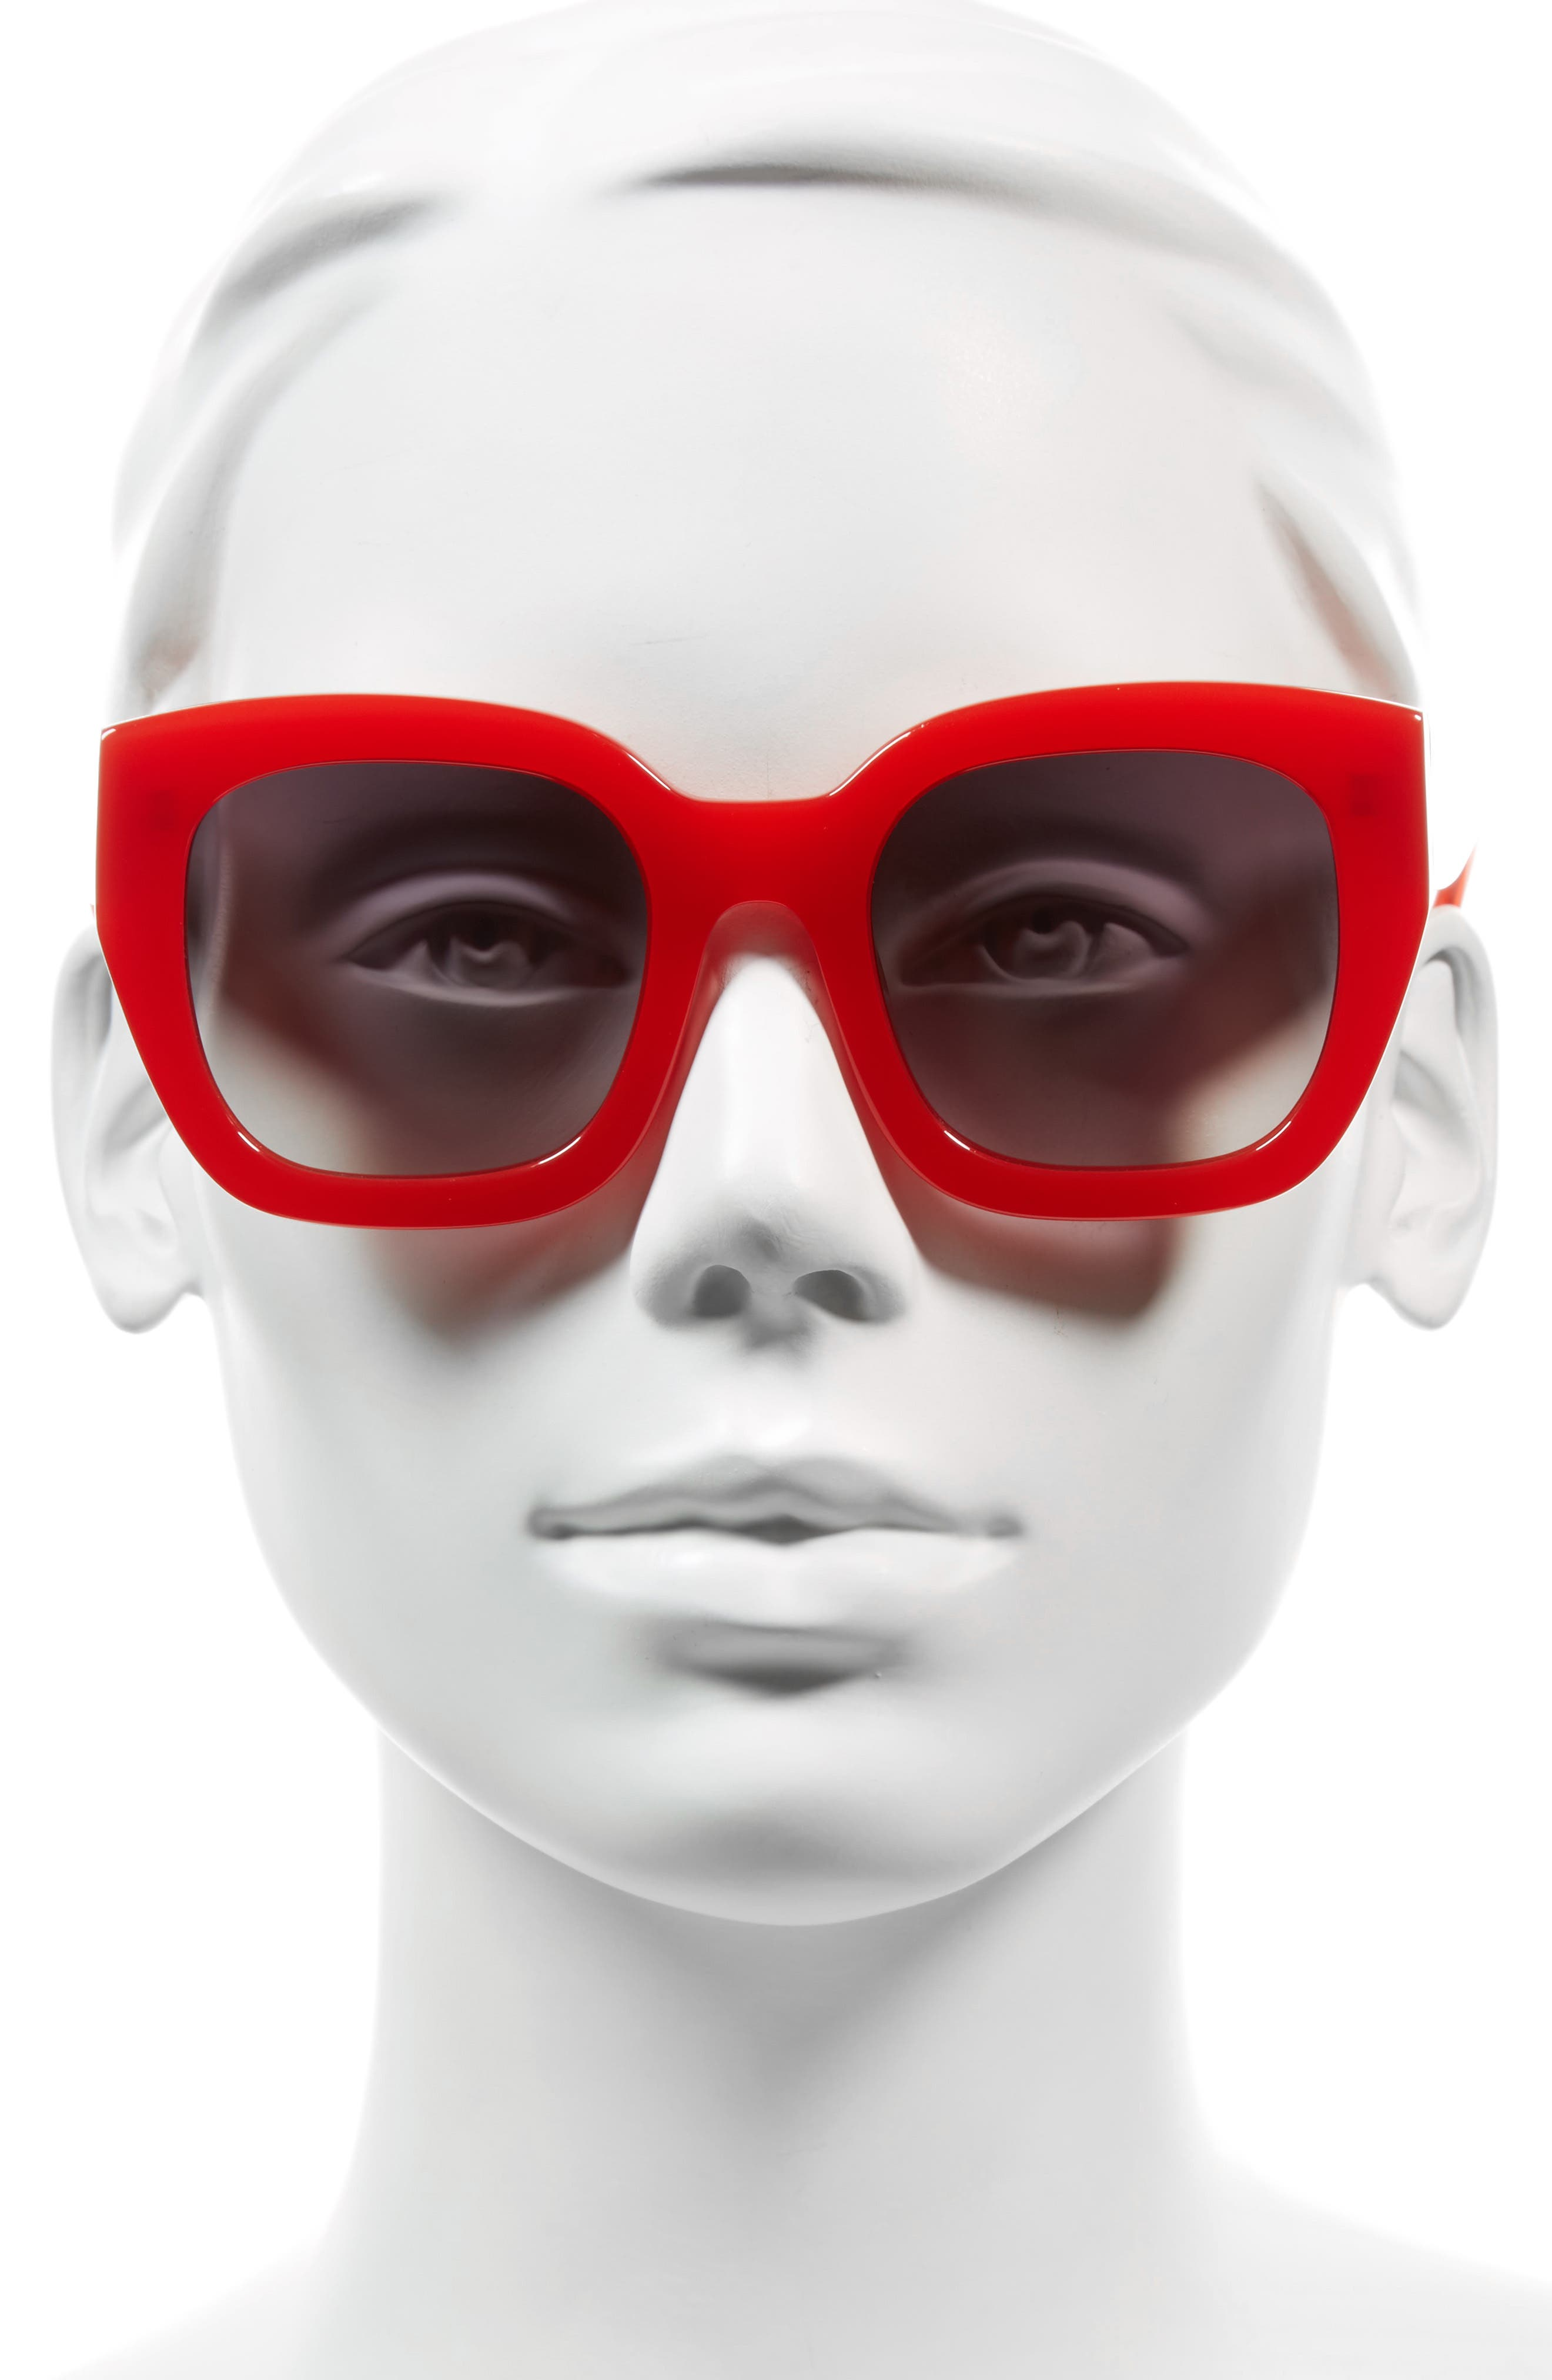 Aberdeen 50mm Square Sunglasses,                             Alternate thumbnail 2, color,                             Poppy